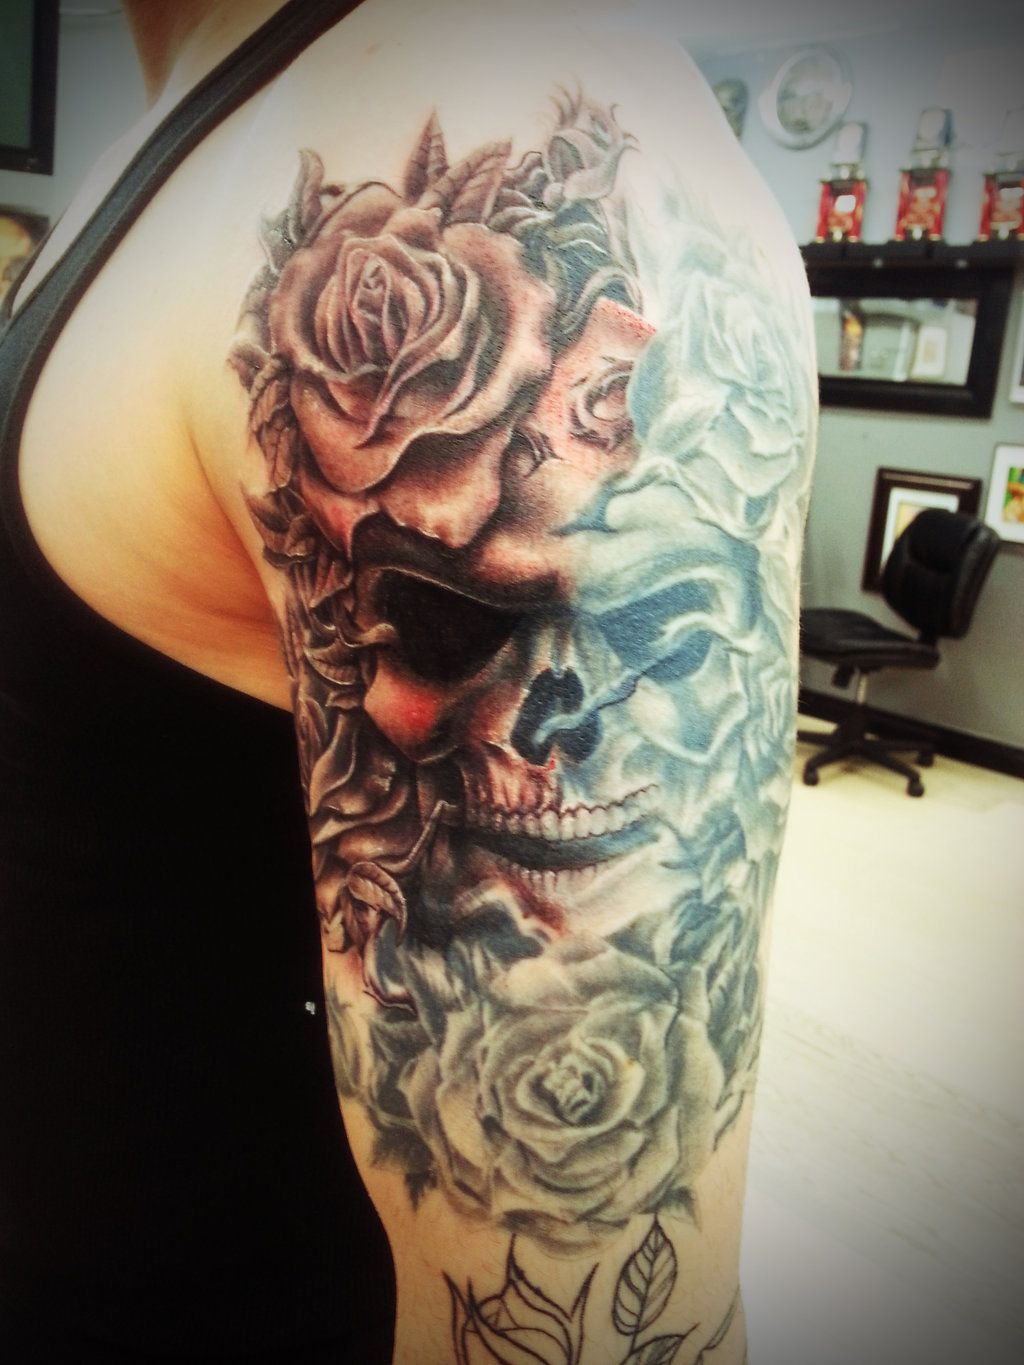 And Rose Tattoos On Arm